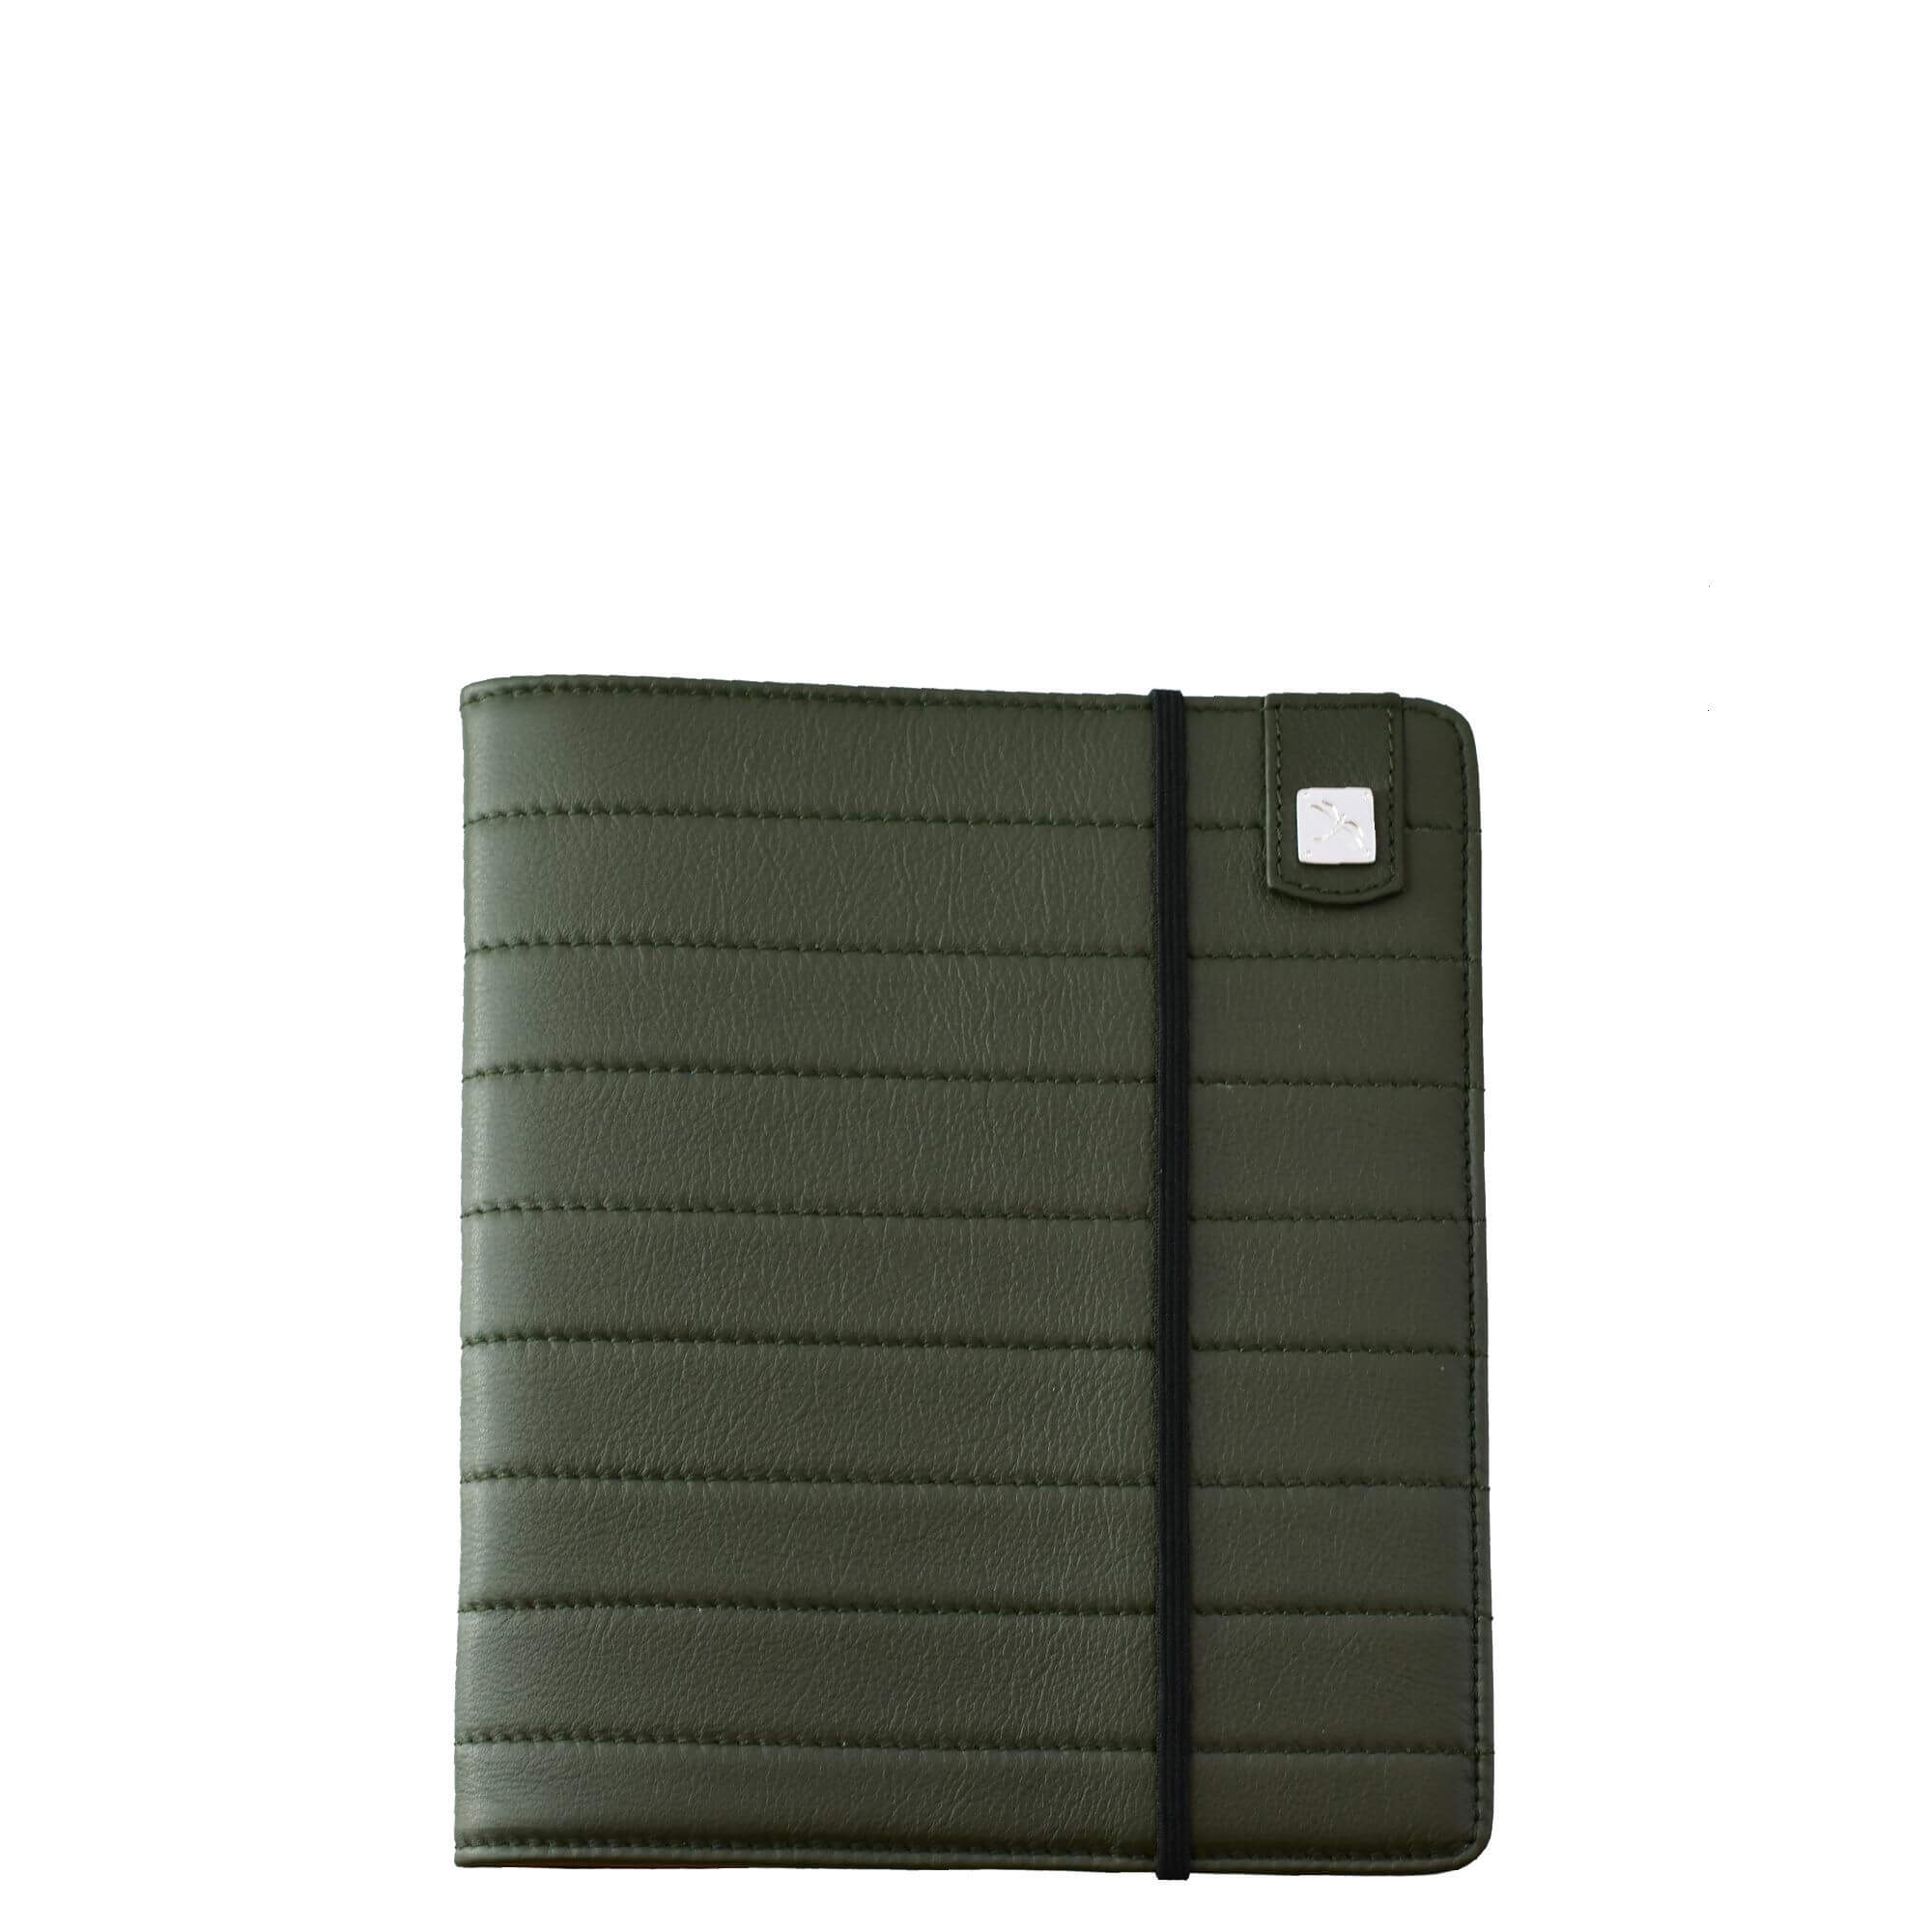 Green Leather Cover. Notebook